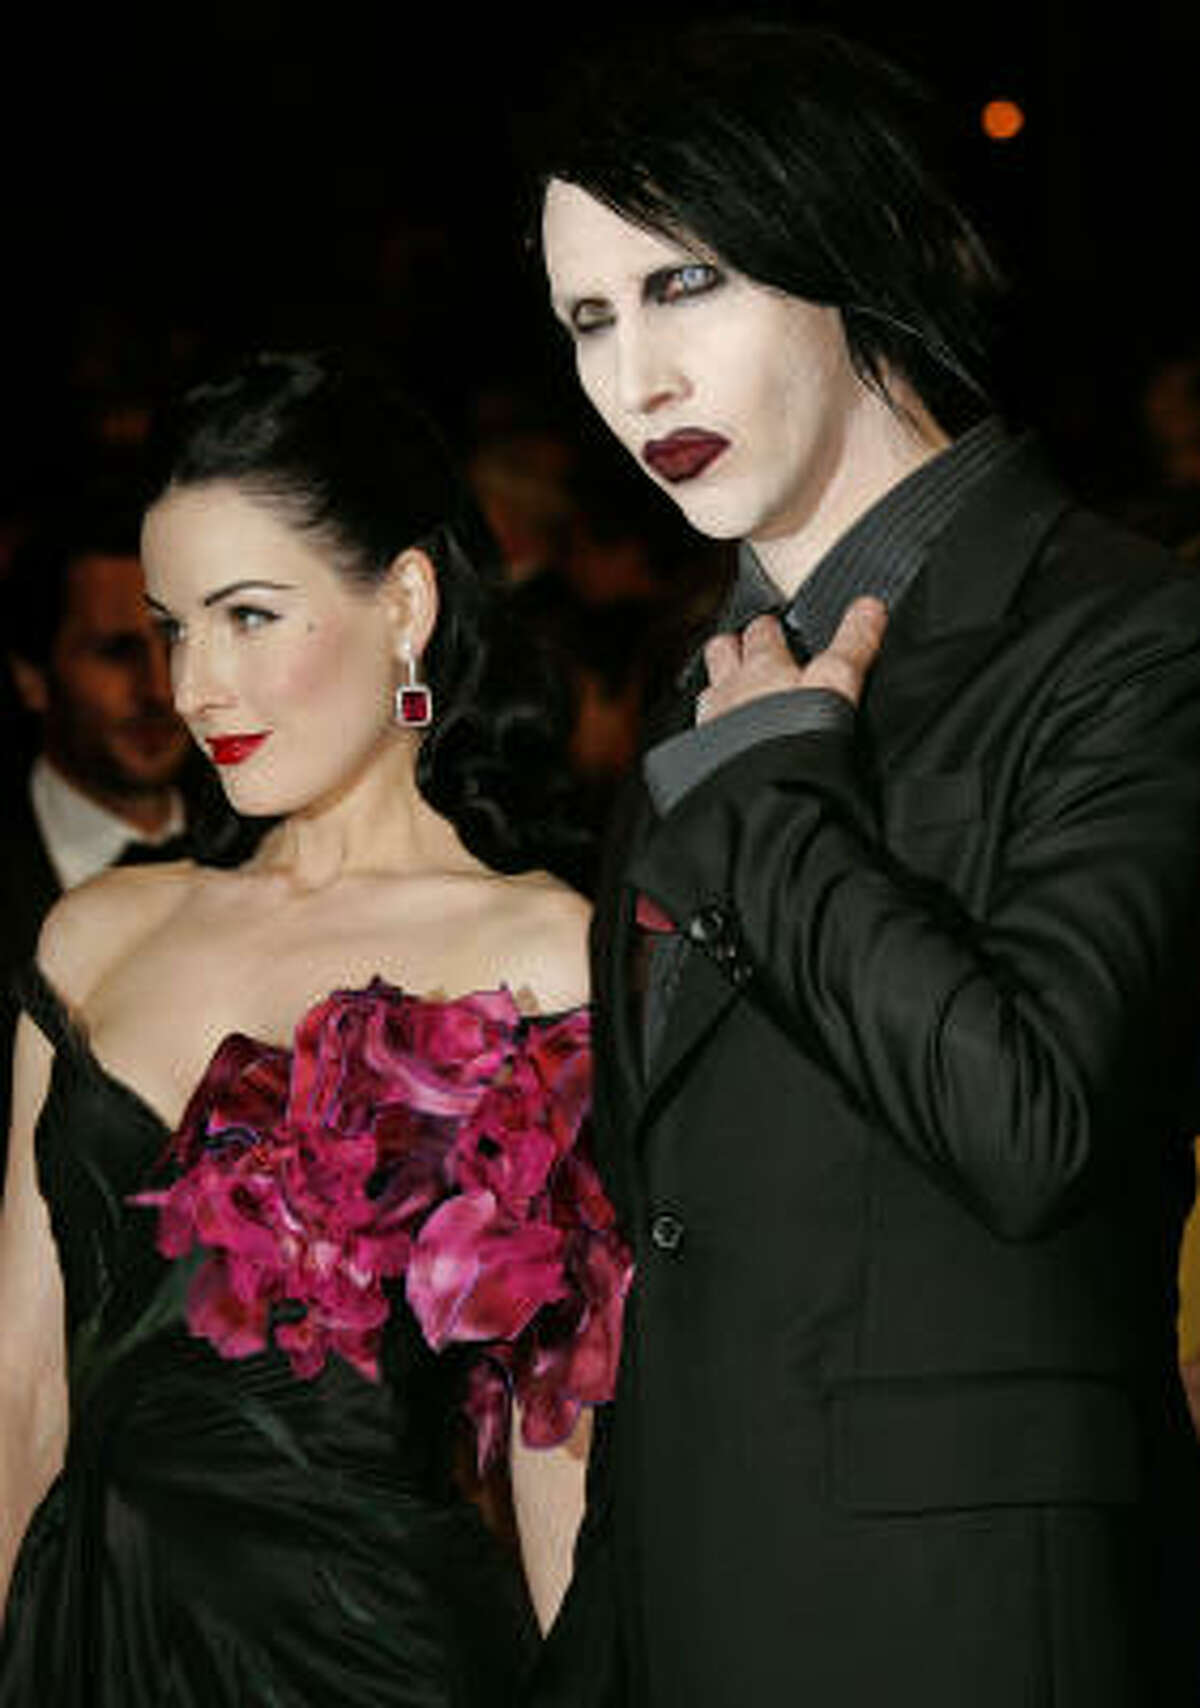 Marilyn Manson and then wife Dita Von Teese arrive for the screening of the film Southland Tales at the 59th International film festival in Cannes, southern France, on May 21, 2006.